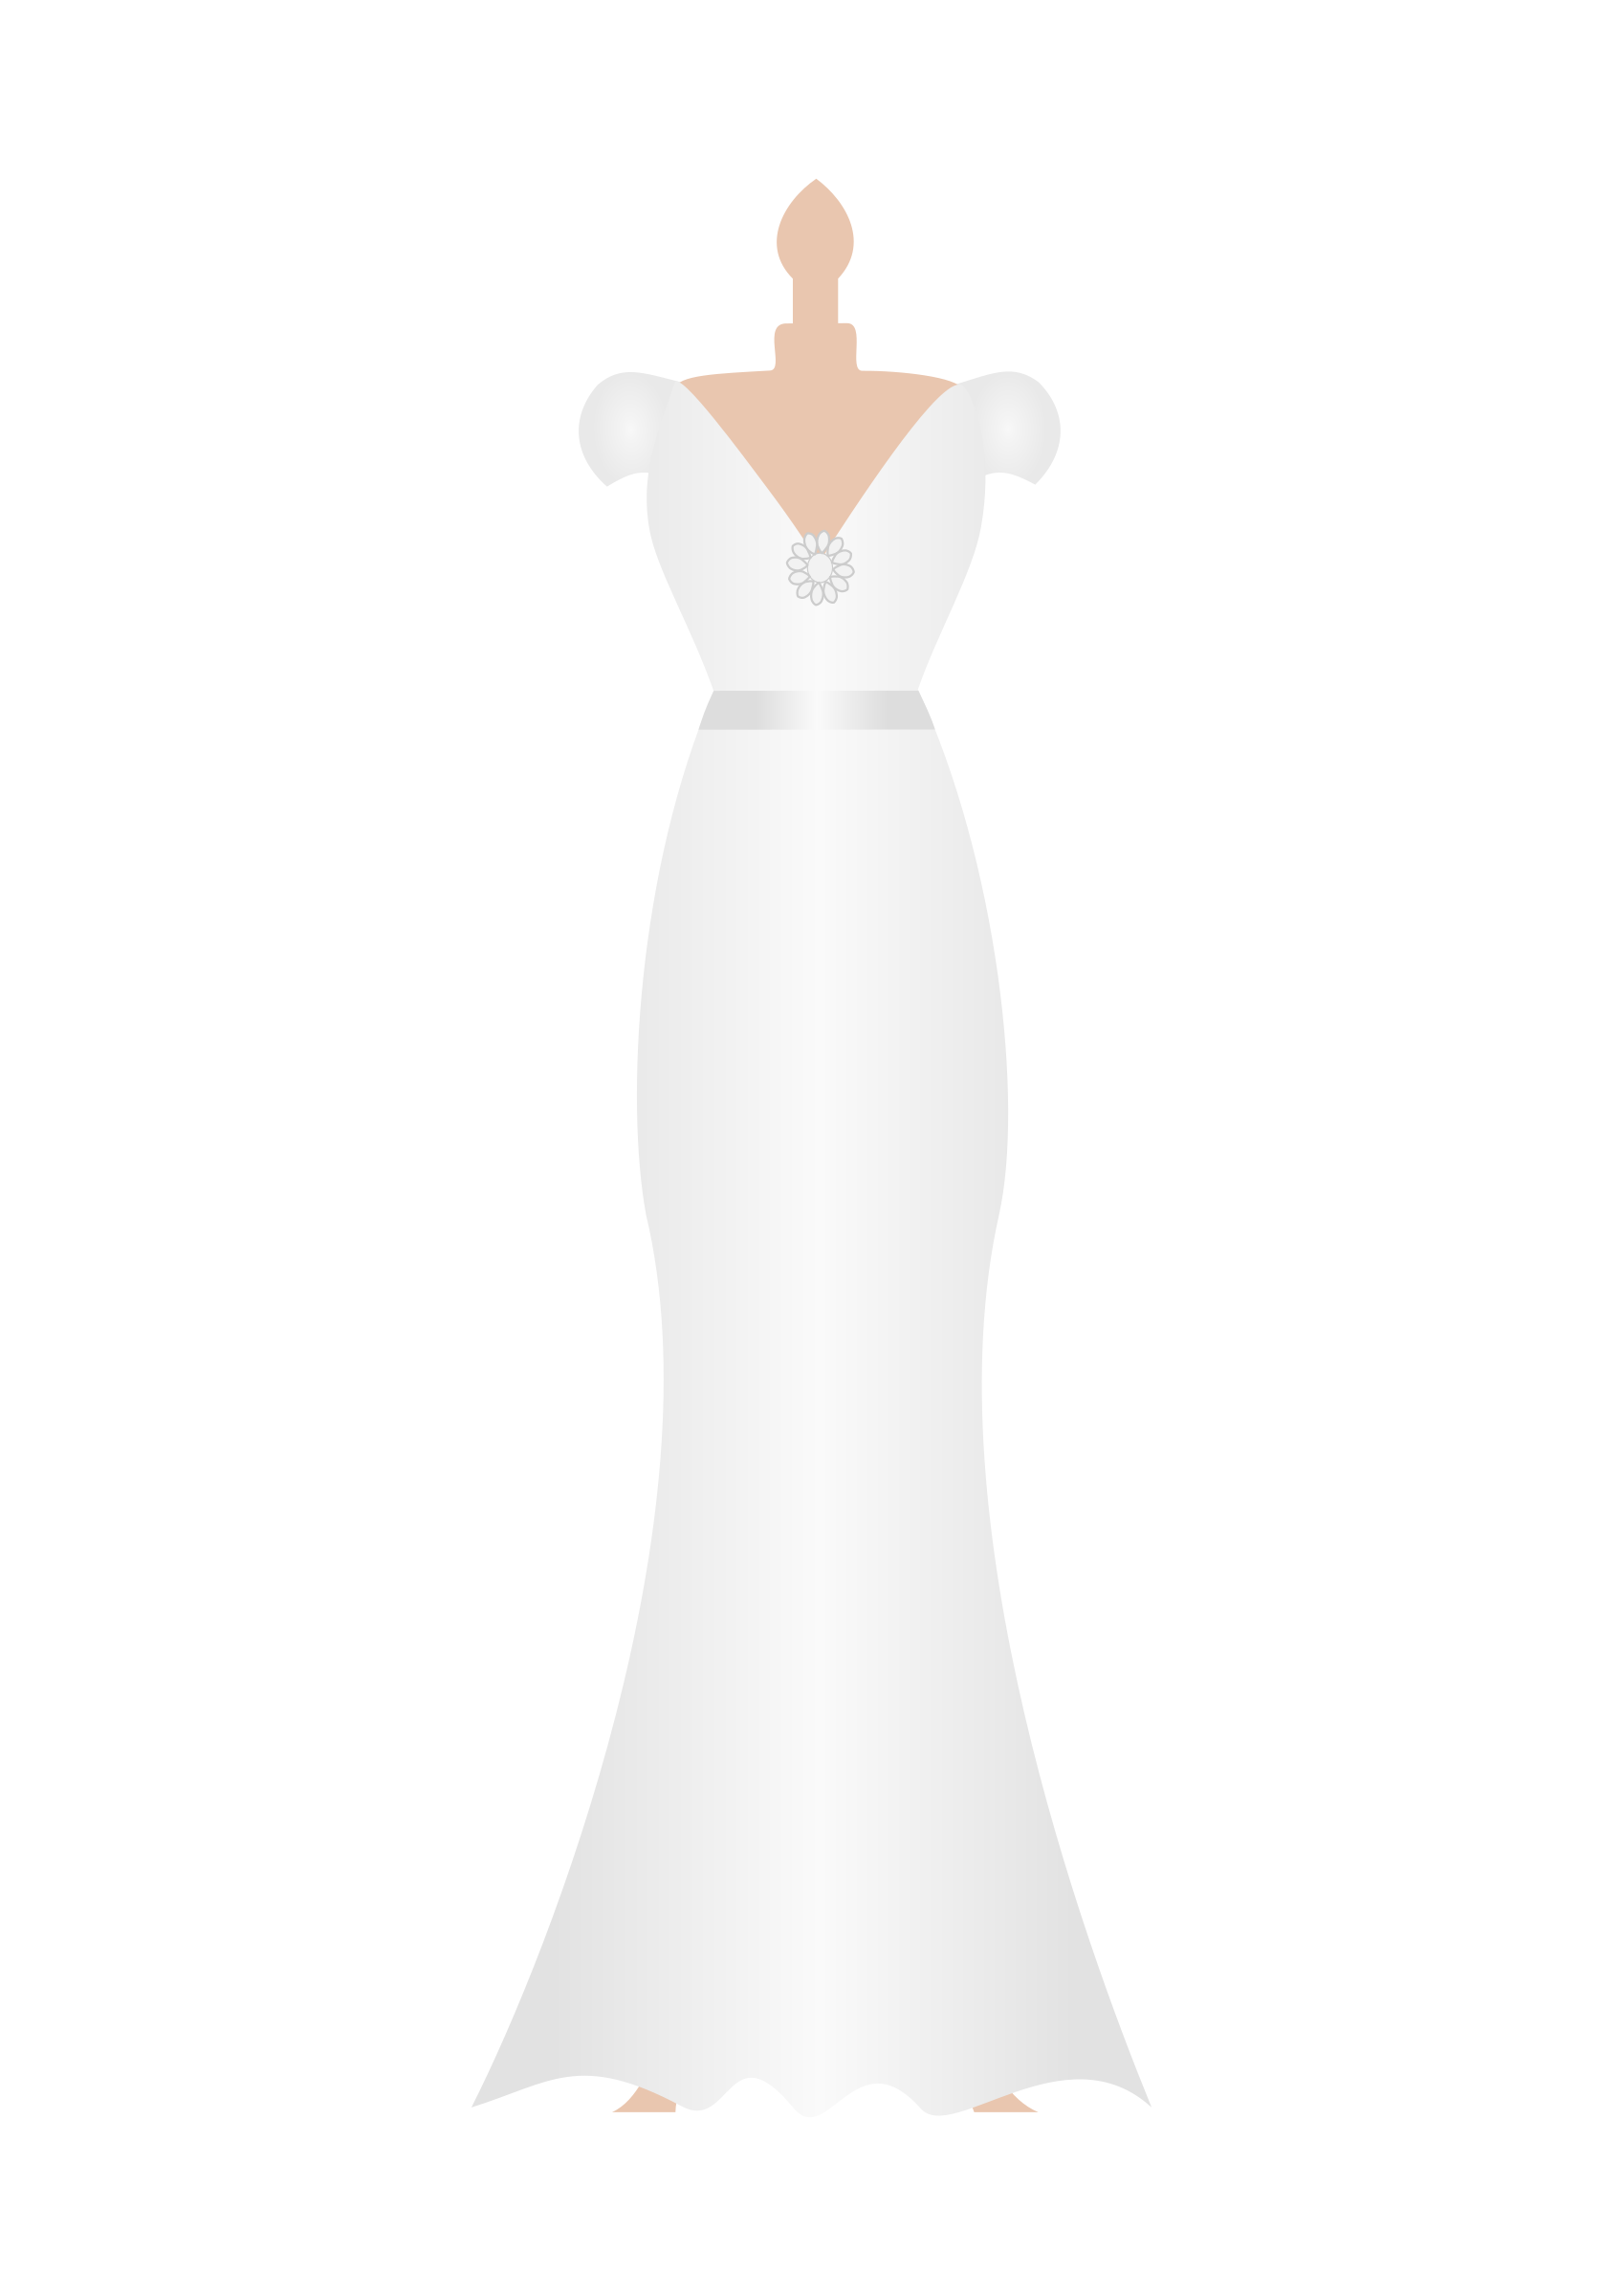 pin Dress clipart wedding dress #7 - Wedding Dress And Tux PNG